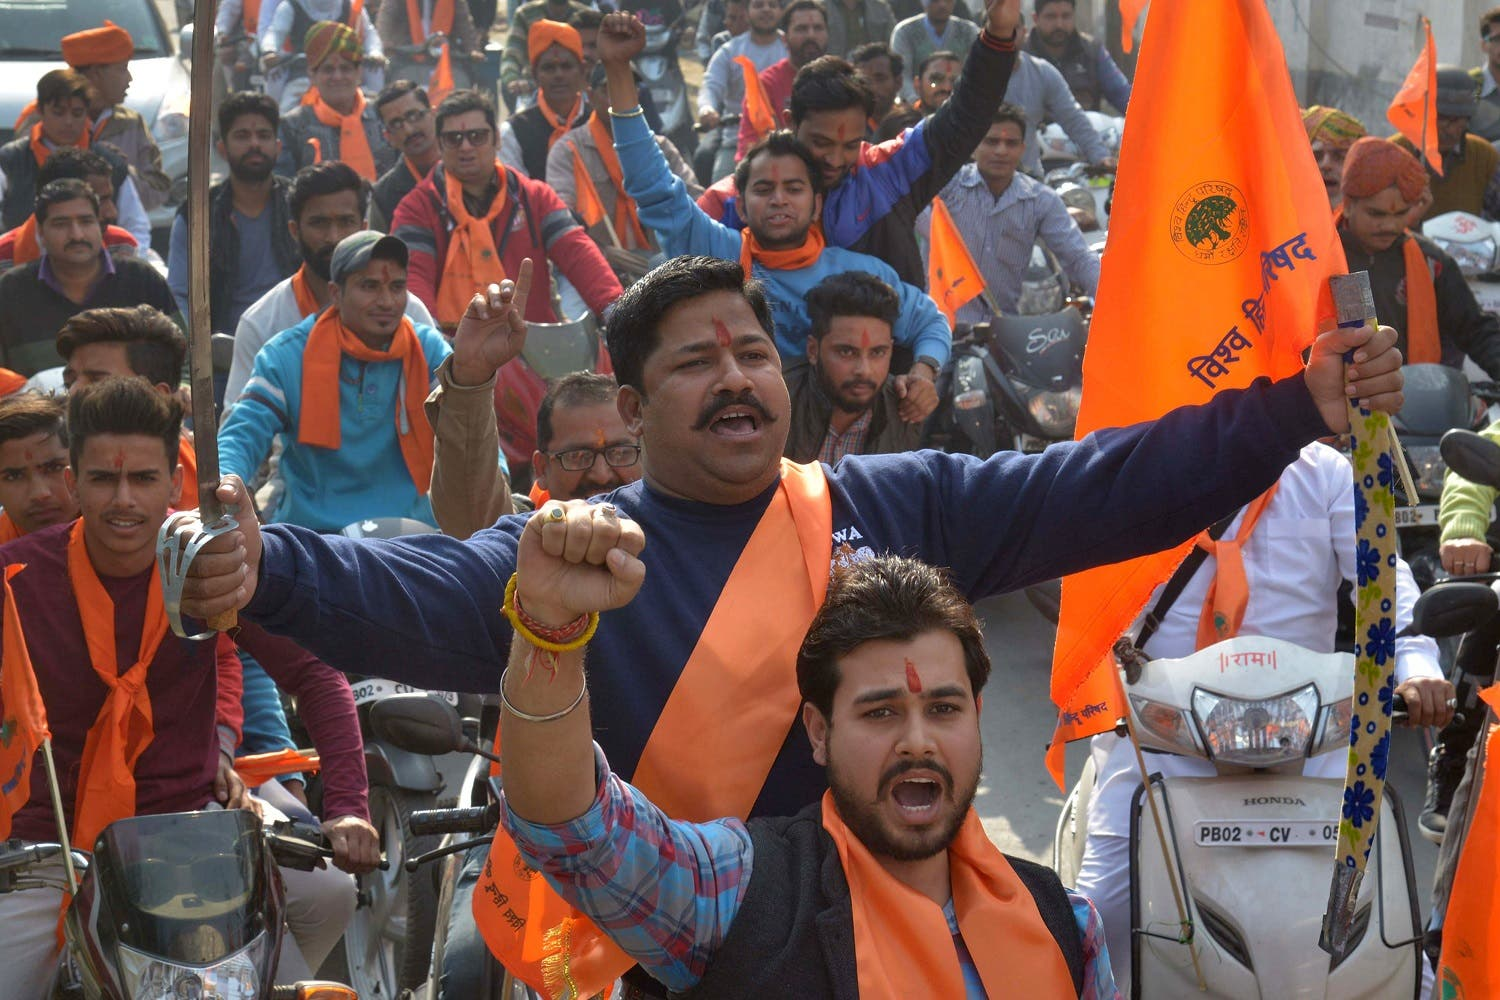 Indian activists of Hindu Bajrang Dal, along with the Vishva Hindu Parishad (VHP), raise religious slogans during a procession marking the 24th anniversary of the demolition of the Babri Masjid Mosque in Ayodhya, in Amritsar on December 6, 2016. (AFP)